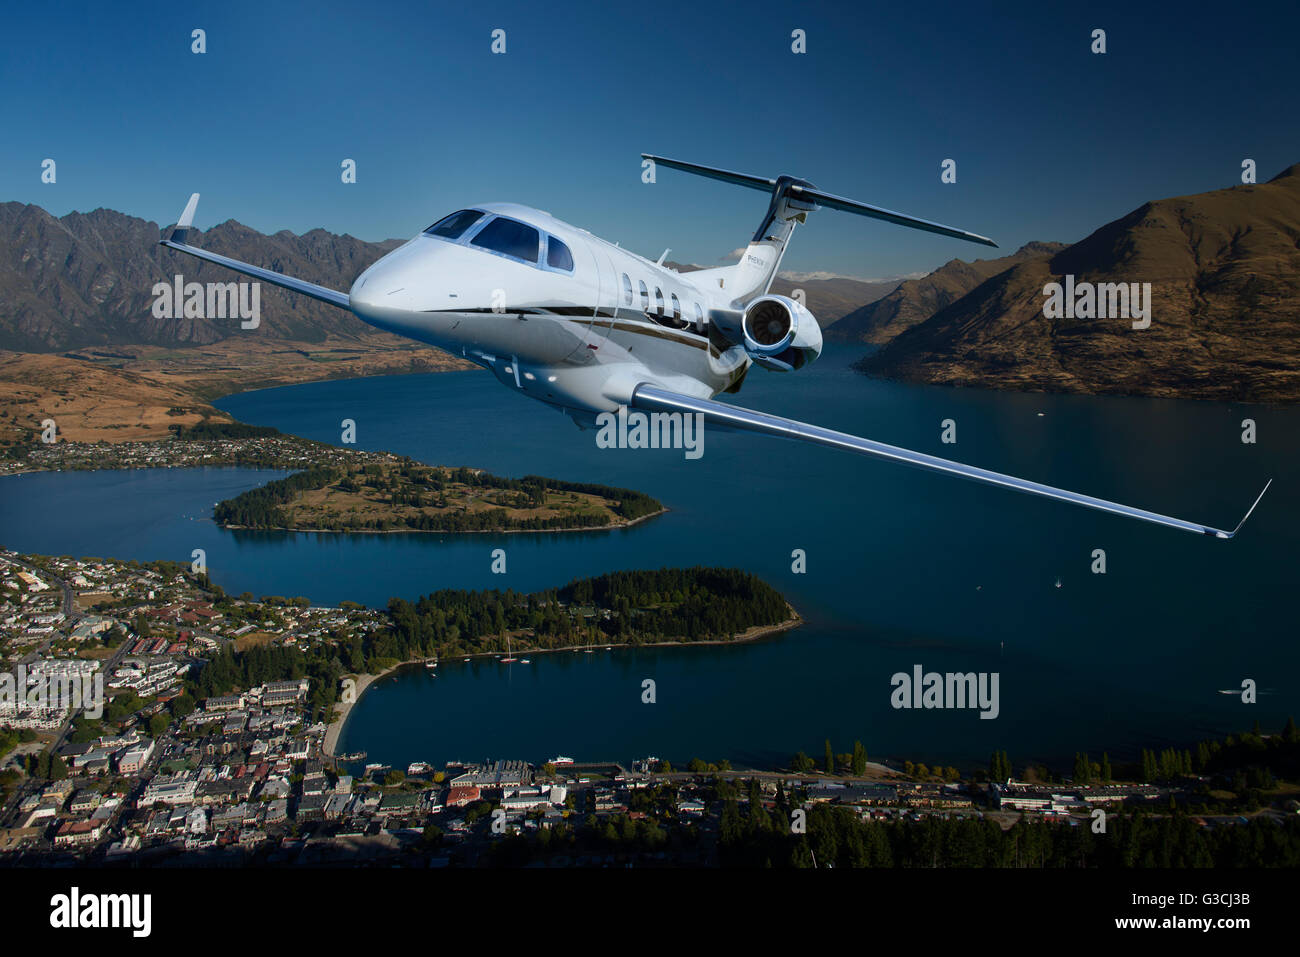 An Embraer Phenom 300A light business jet climbs to altitude on a flight mission. - Stock Image